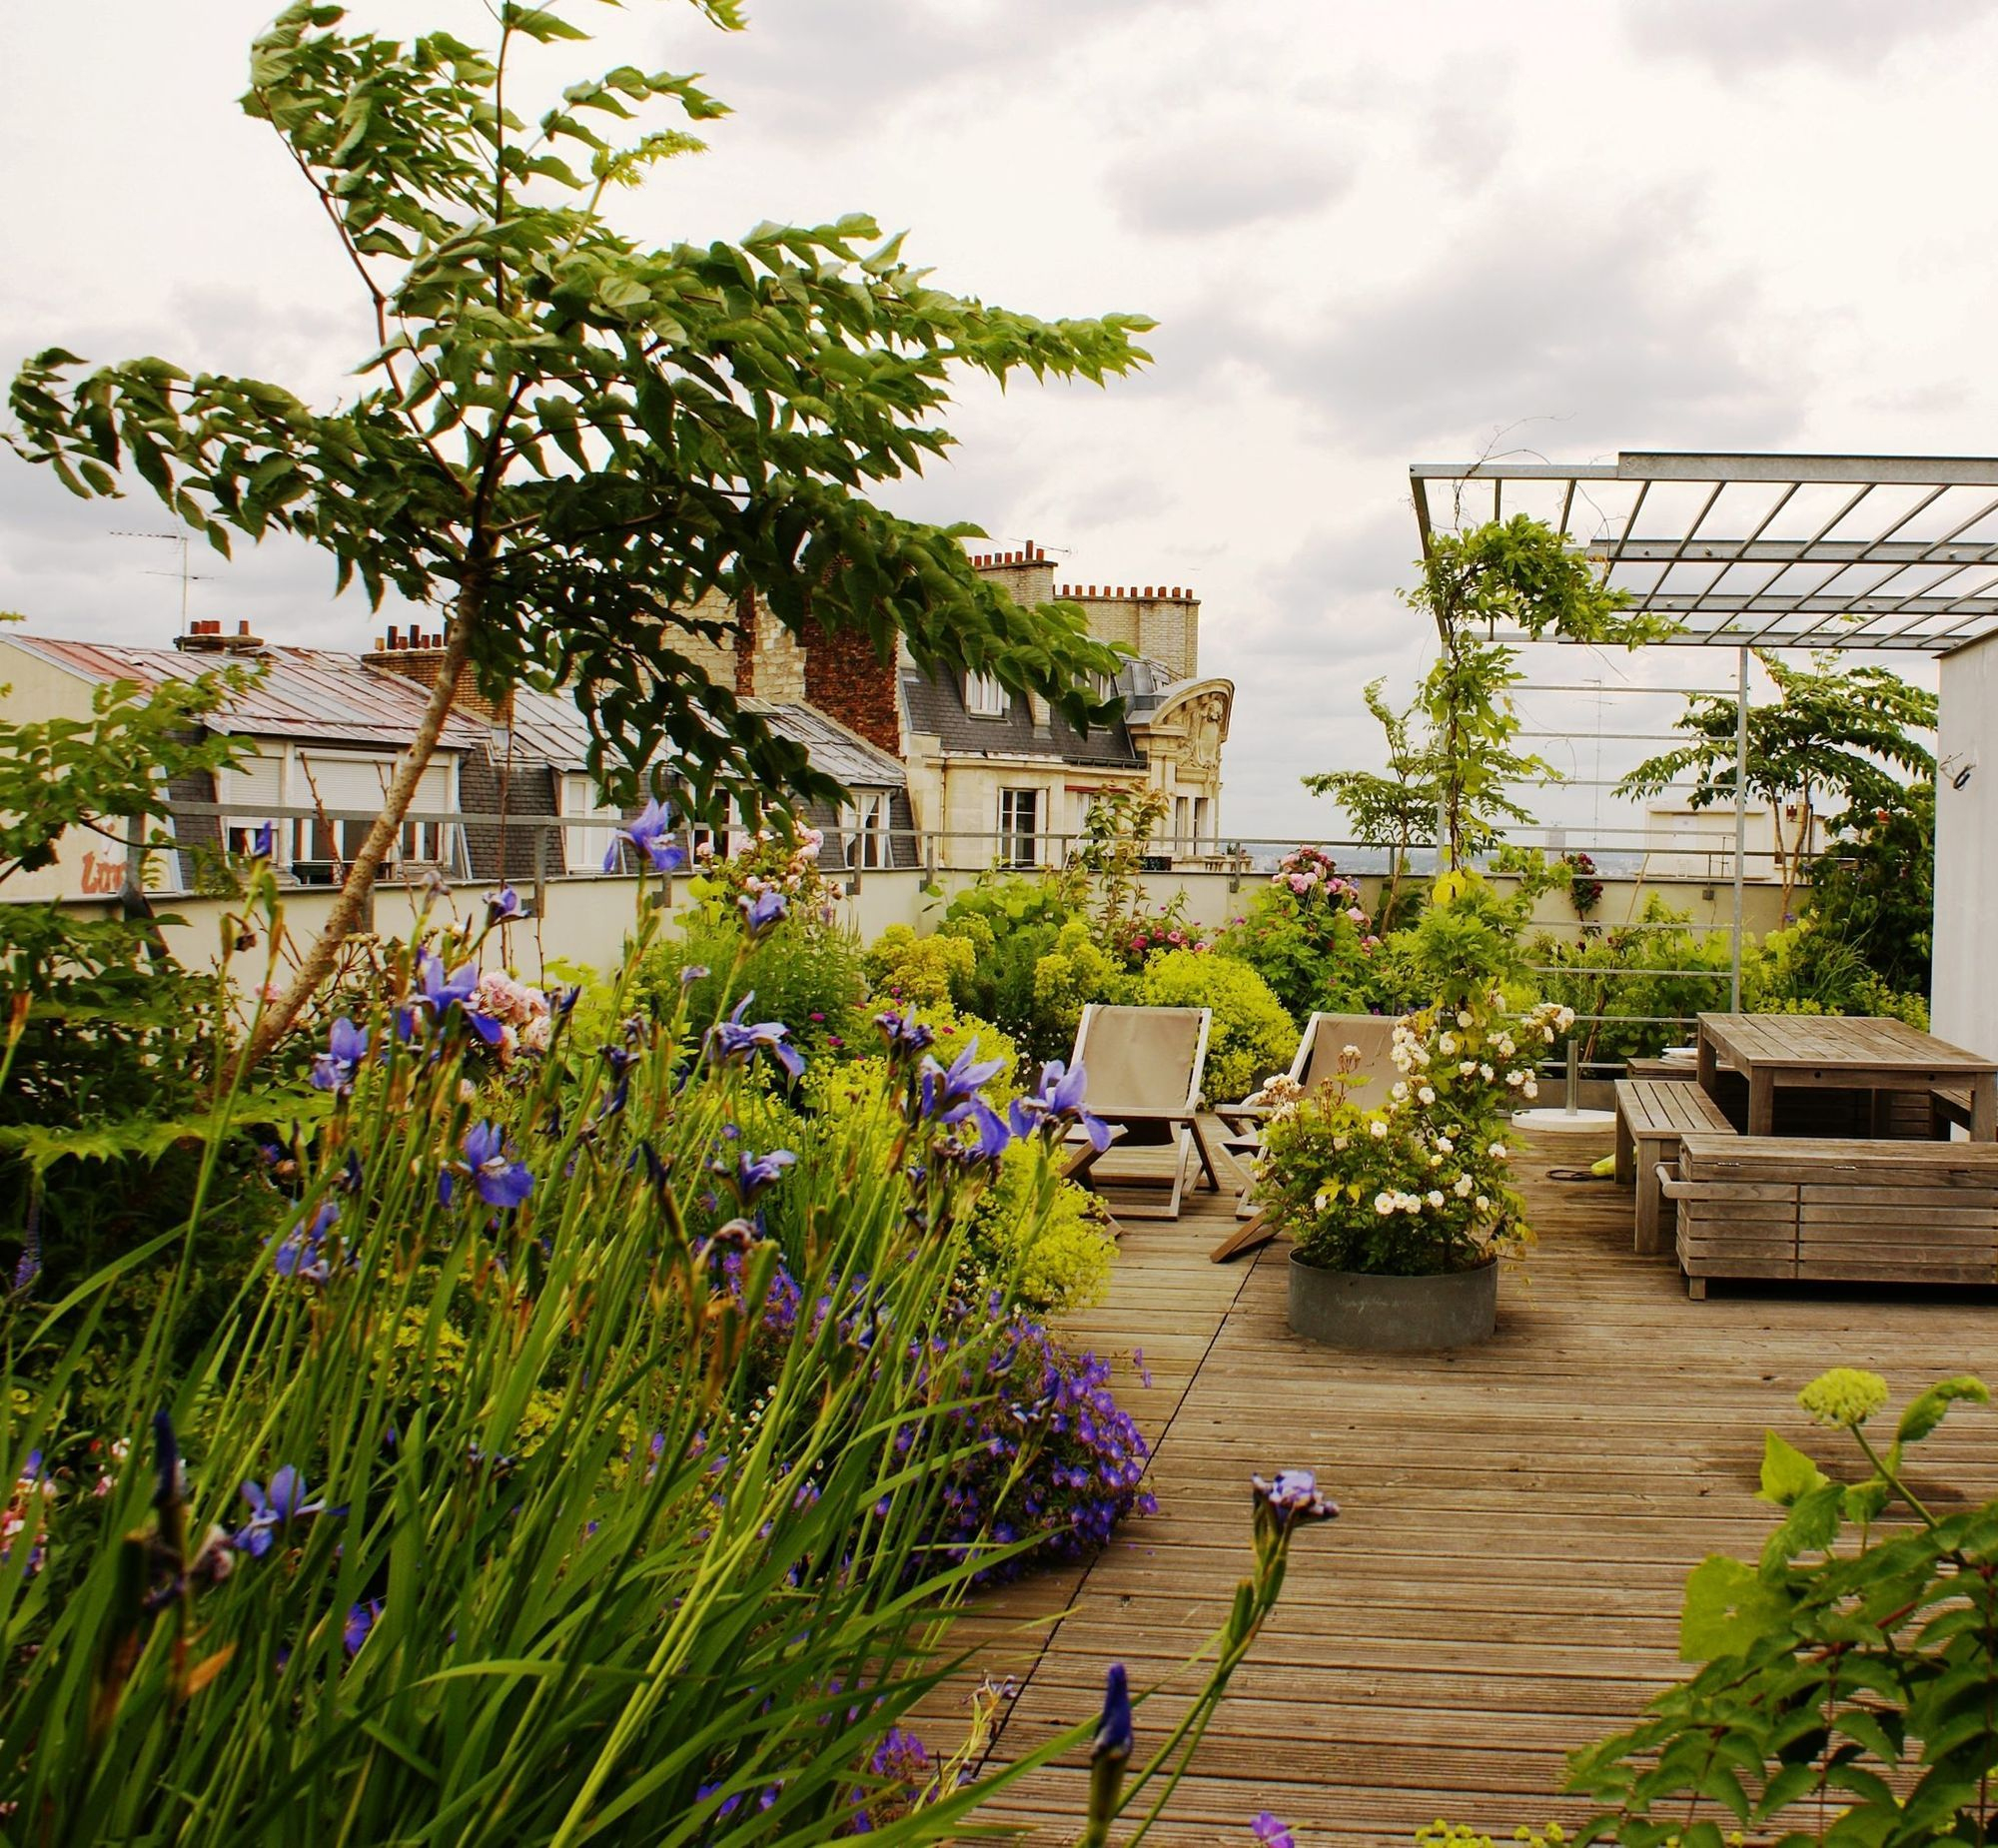 Aménager Une Grande Terrasse : 10 Solutions Possibles ... pour Amenager Une Grande Terrasse